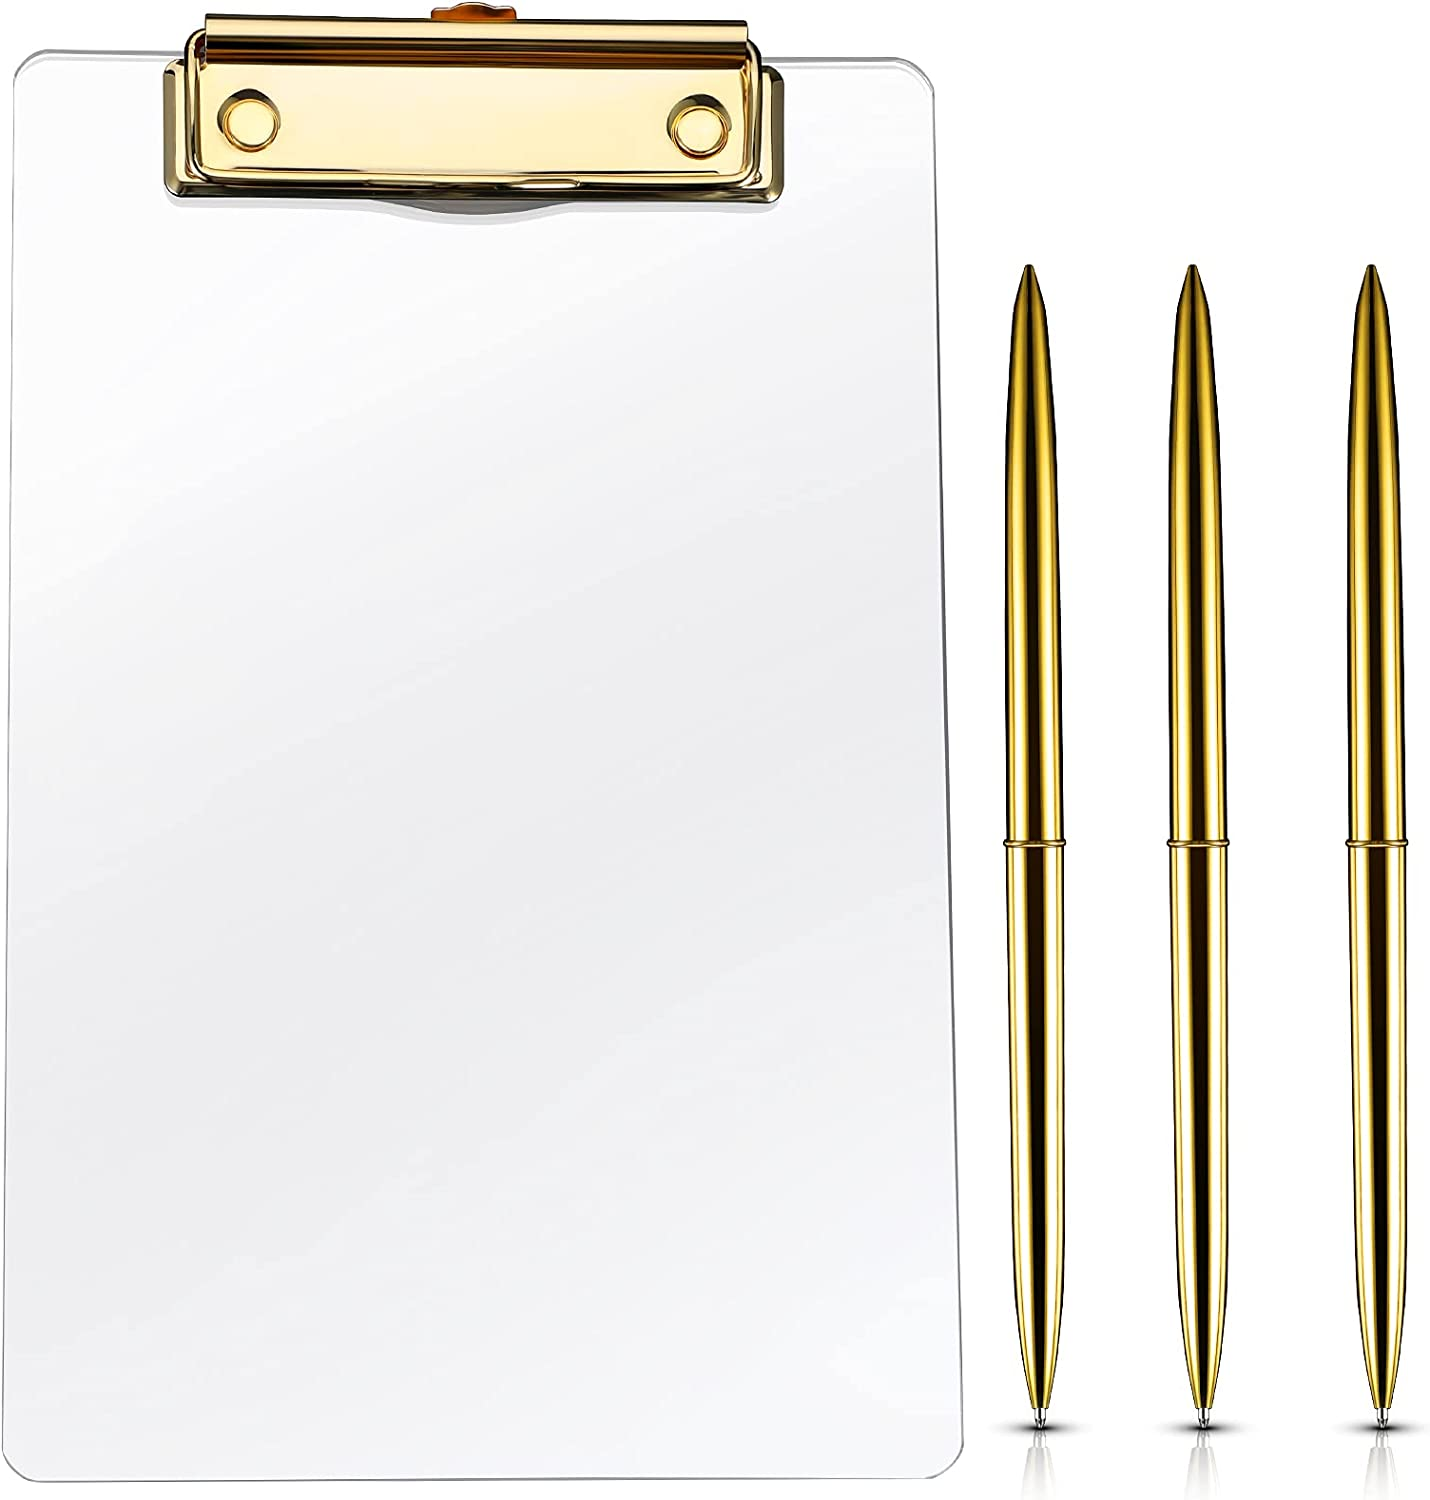 4 Pieces A5 Clear Acrylic Plastic Clipboard and Pen Set, Including with Shinny Gold Finish Clip Thick Clipboard, 3 Gold Ballpoint Pen for Modern Arts Lover, Office, School and Home